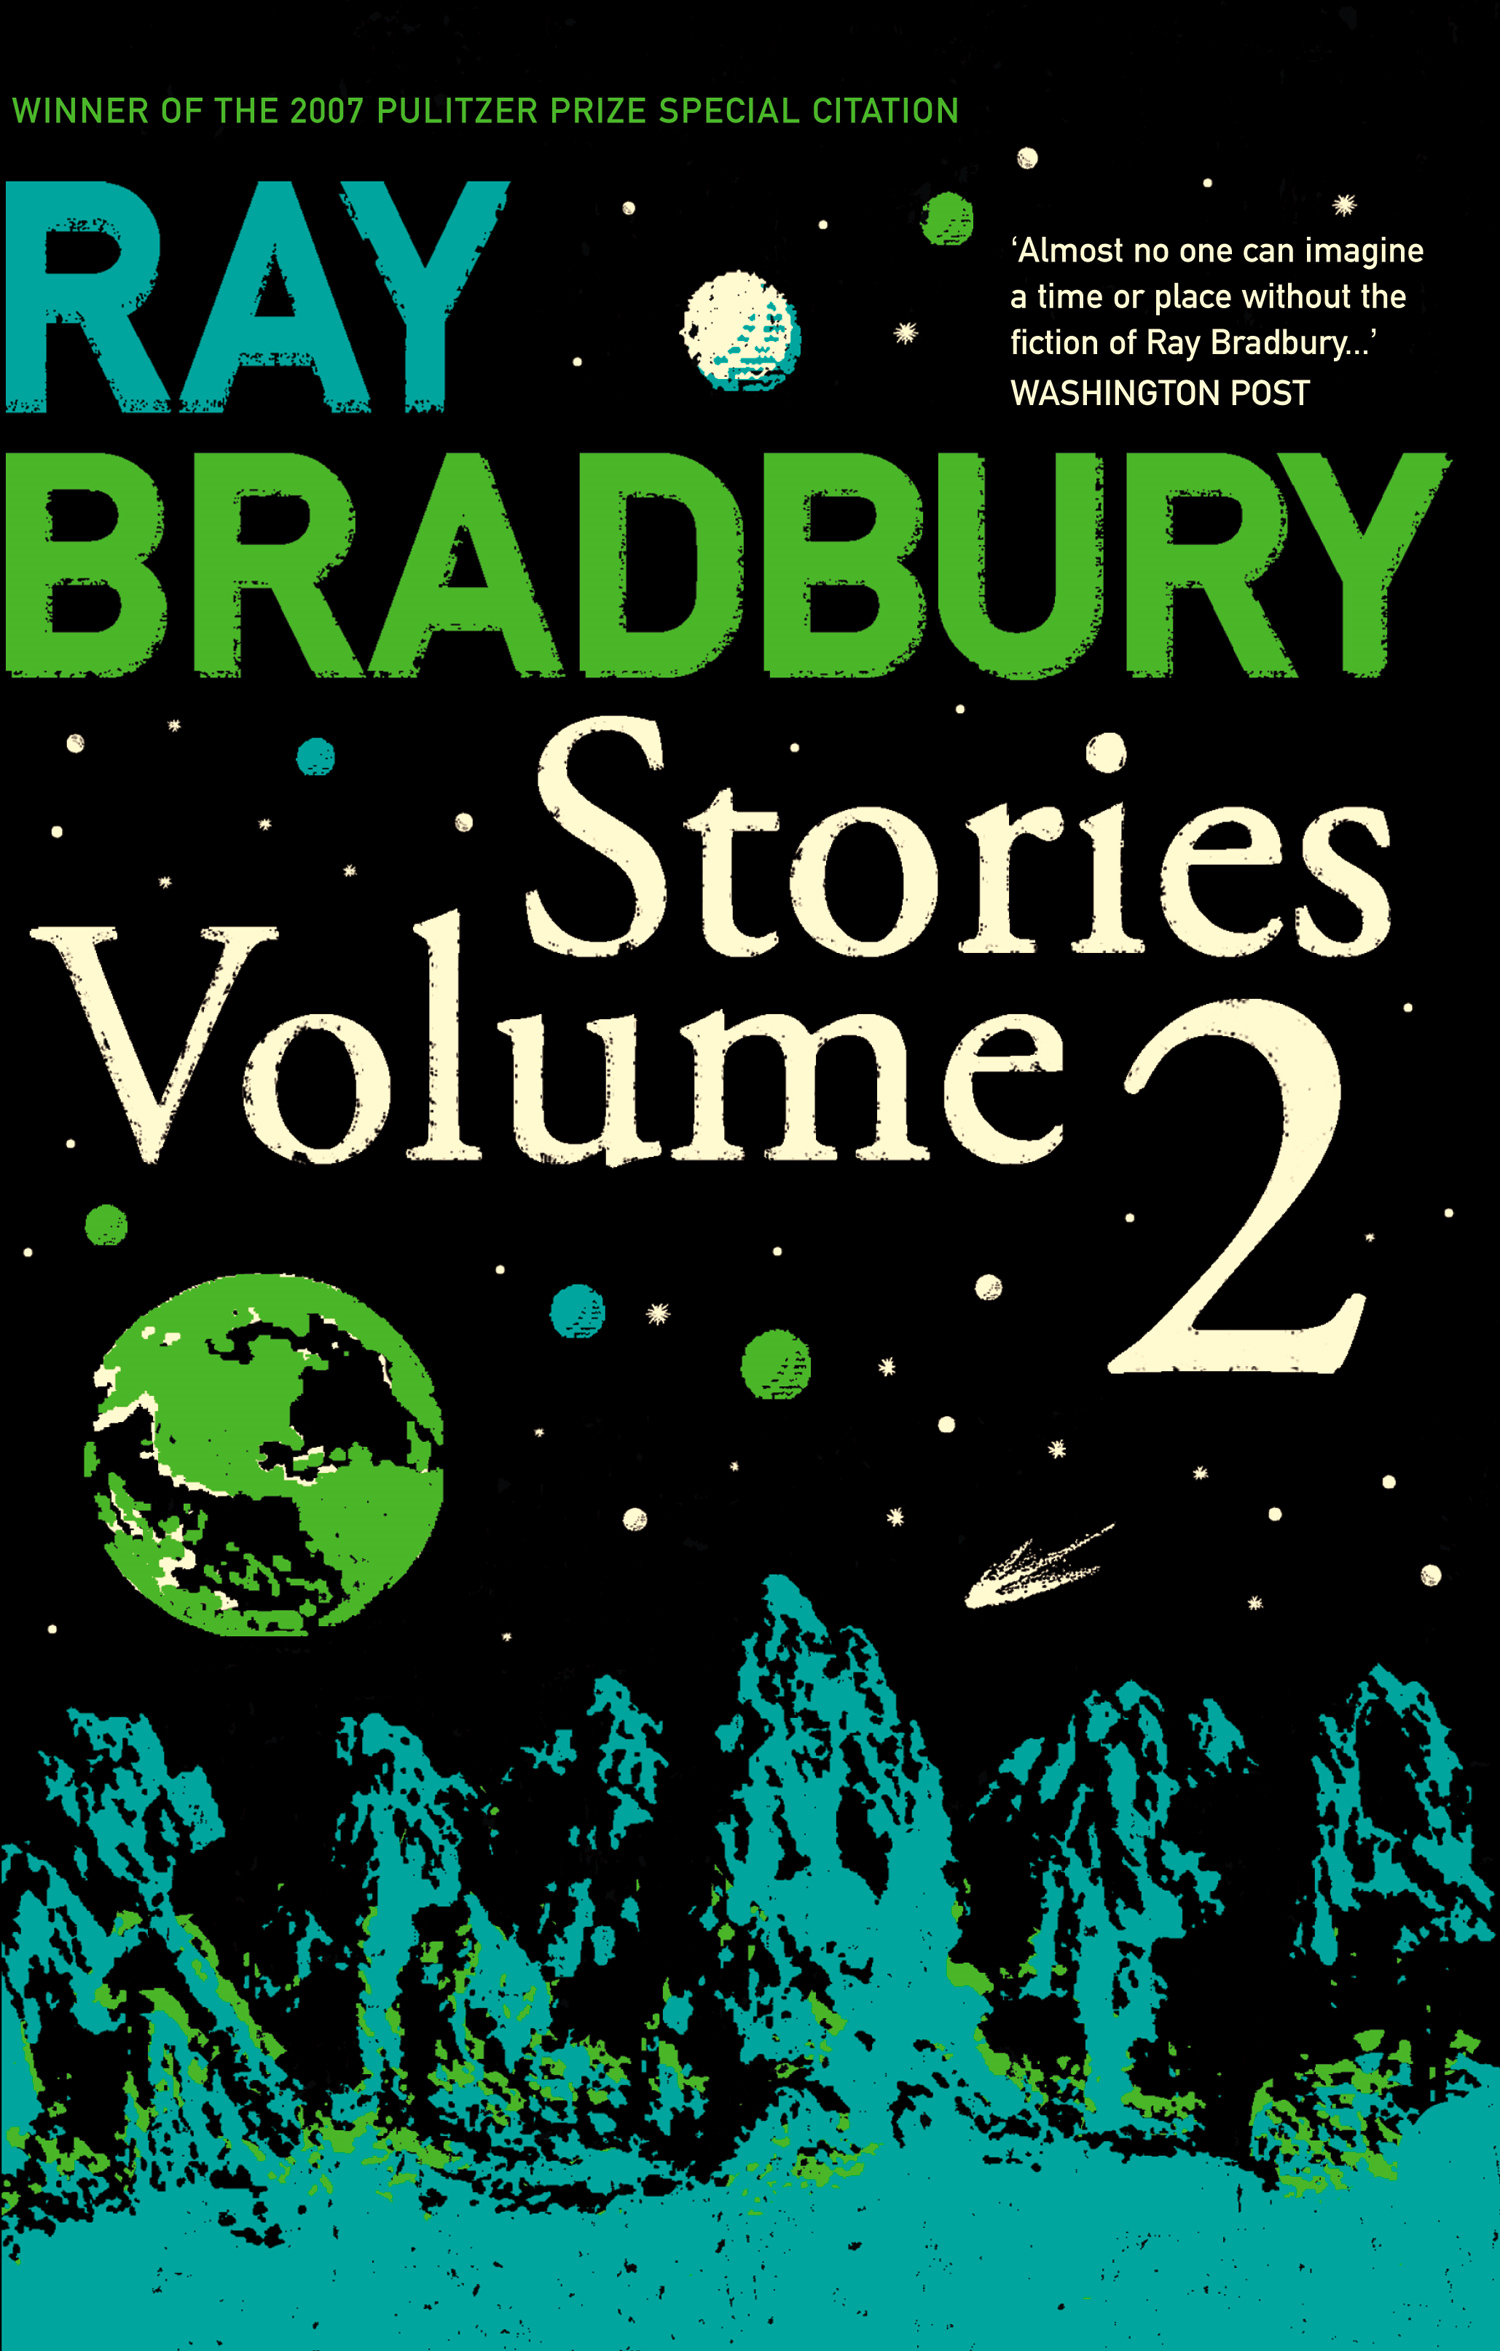 Ray Bradbury Stories Volume 2